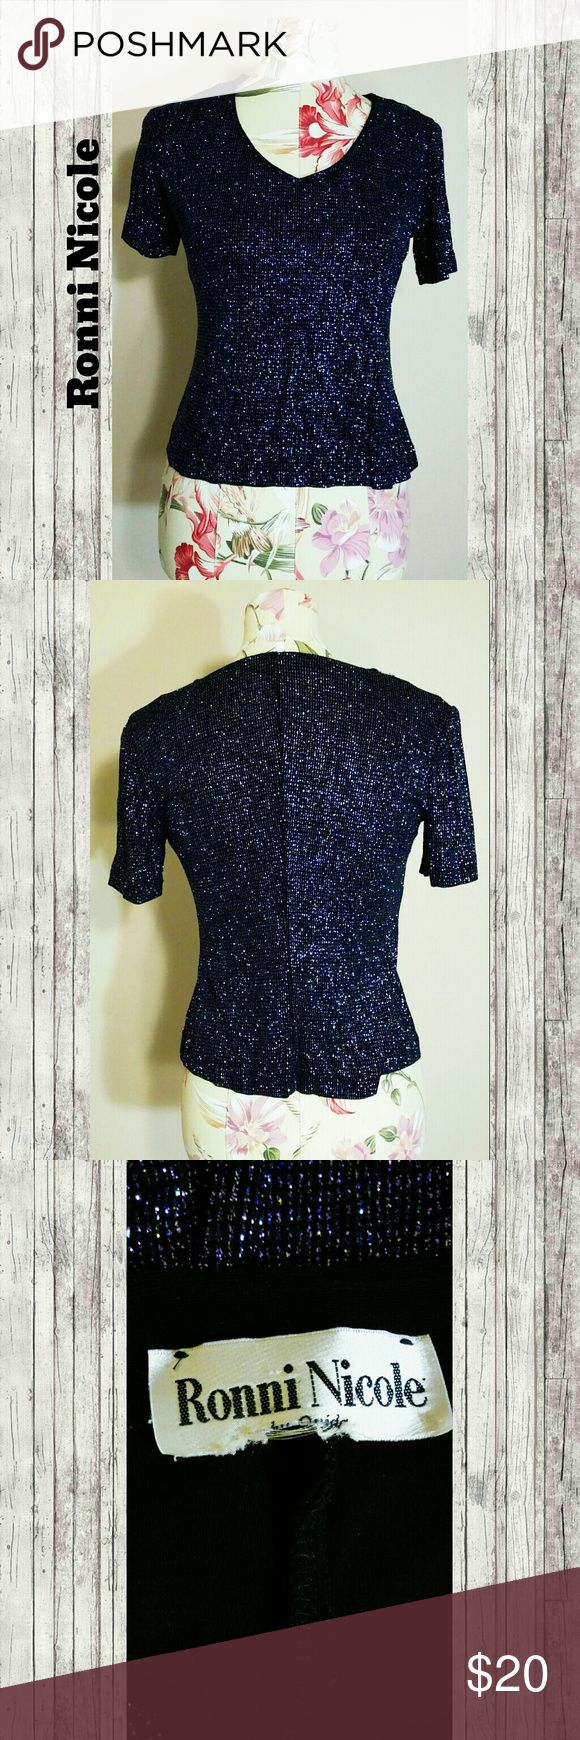 Vintage Galaxy Top A lovely sparkly blouse in a midnight blue color. No major visible flaws. Tags: vintage sparkle night out glam dressy Ronni Nicole Tops Blouses